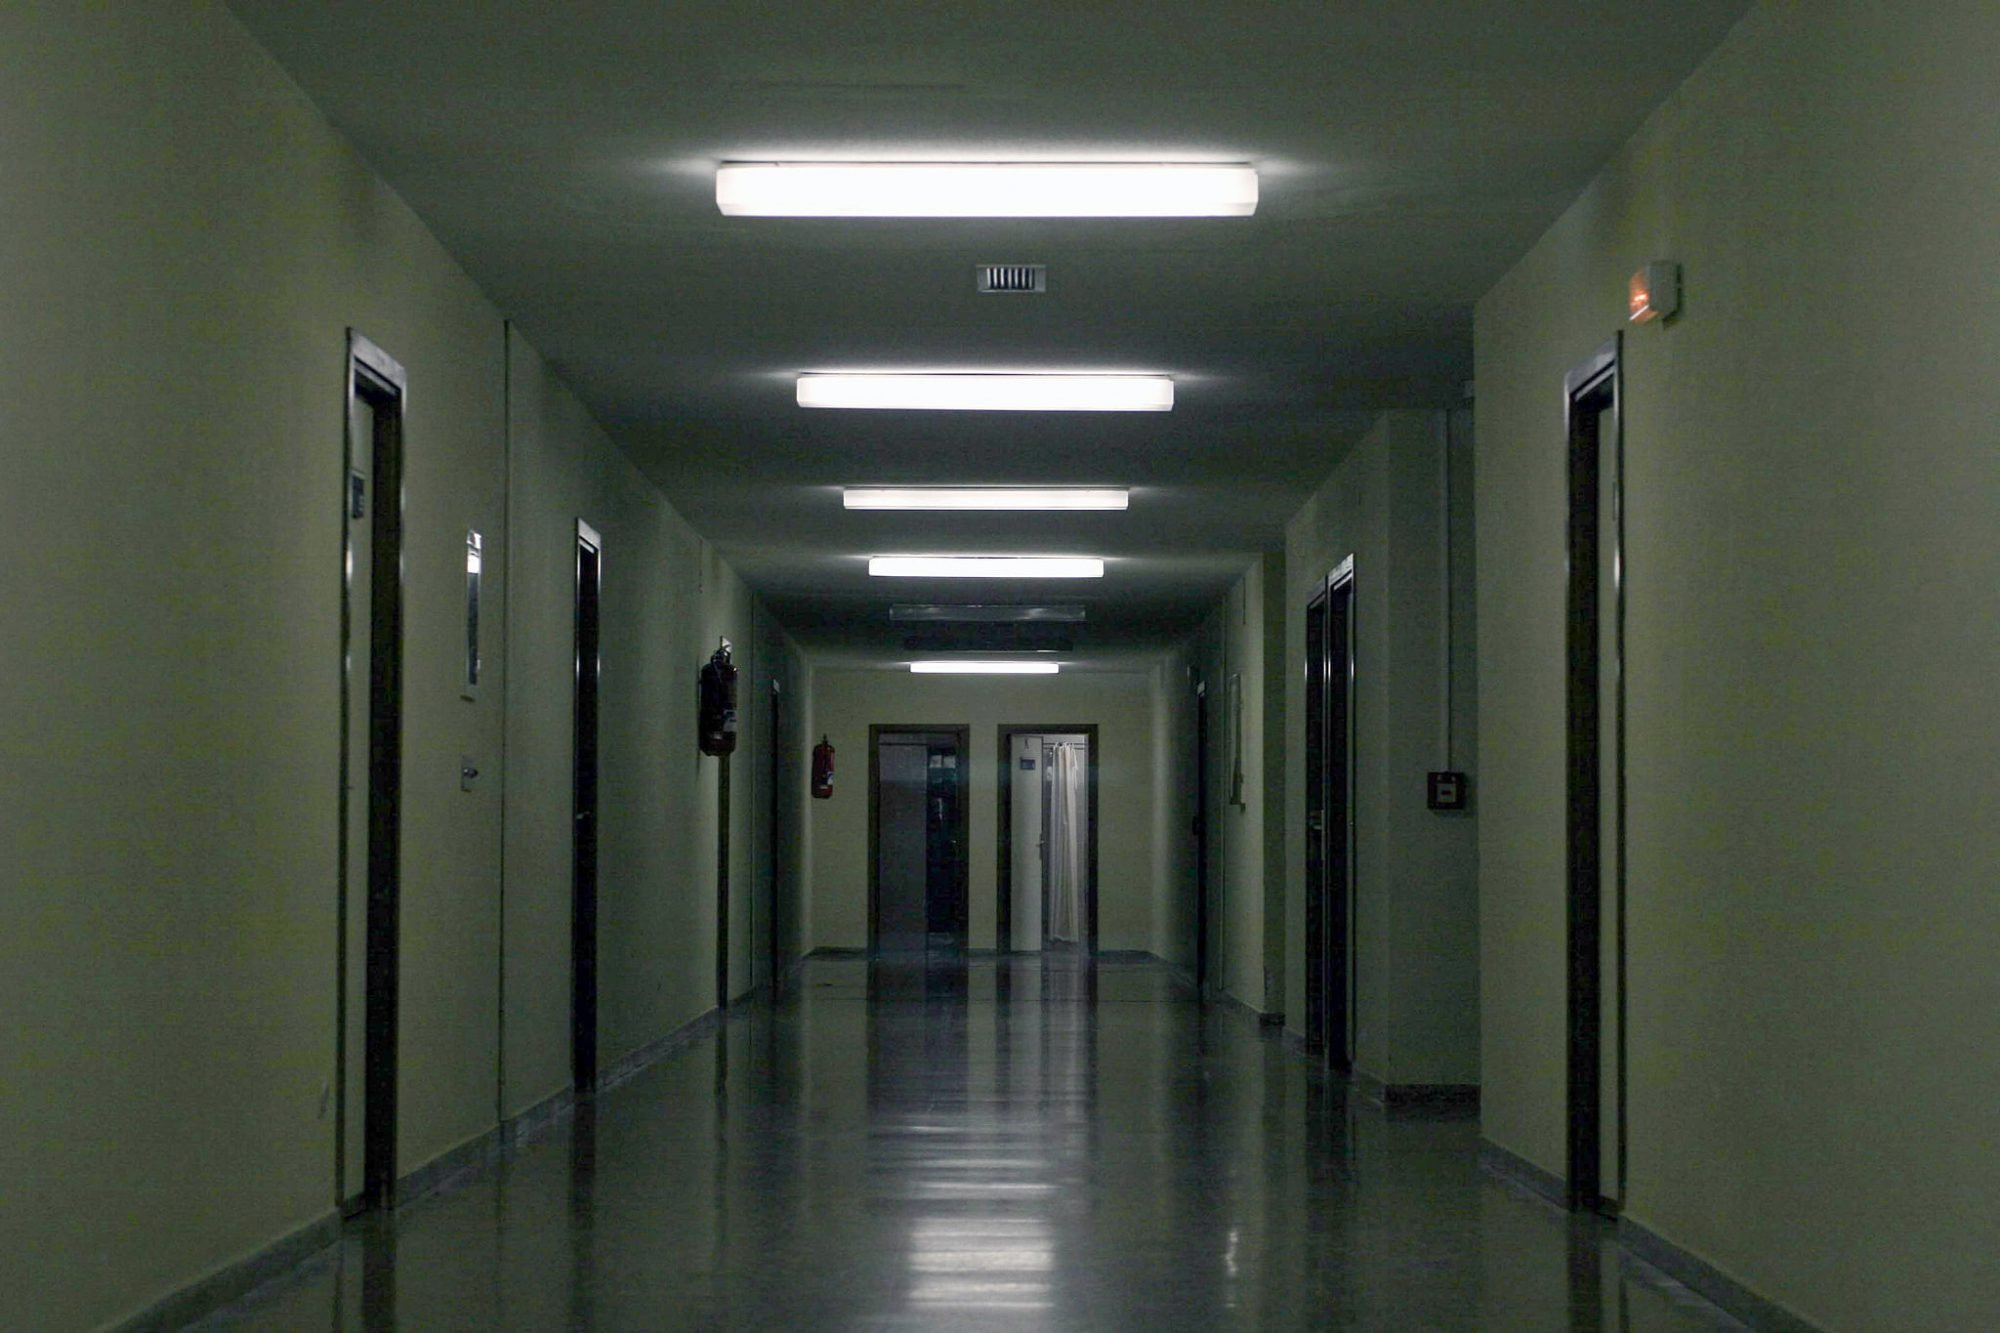 An empty gloomy corridor is lit by long ceiling lights overhead. Down both sides are multiple doorways with two open doors at the end of the corridor.